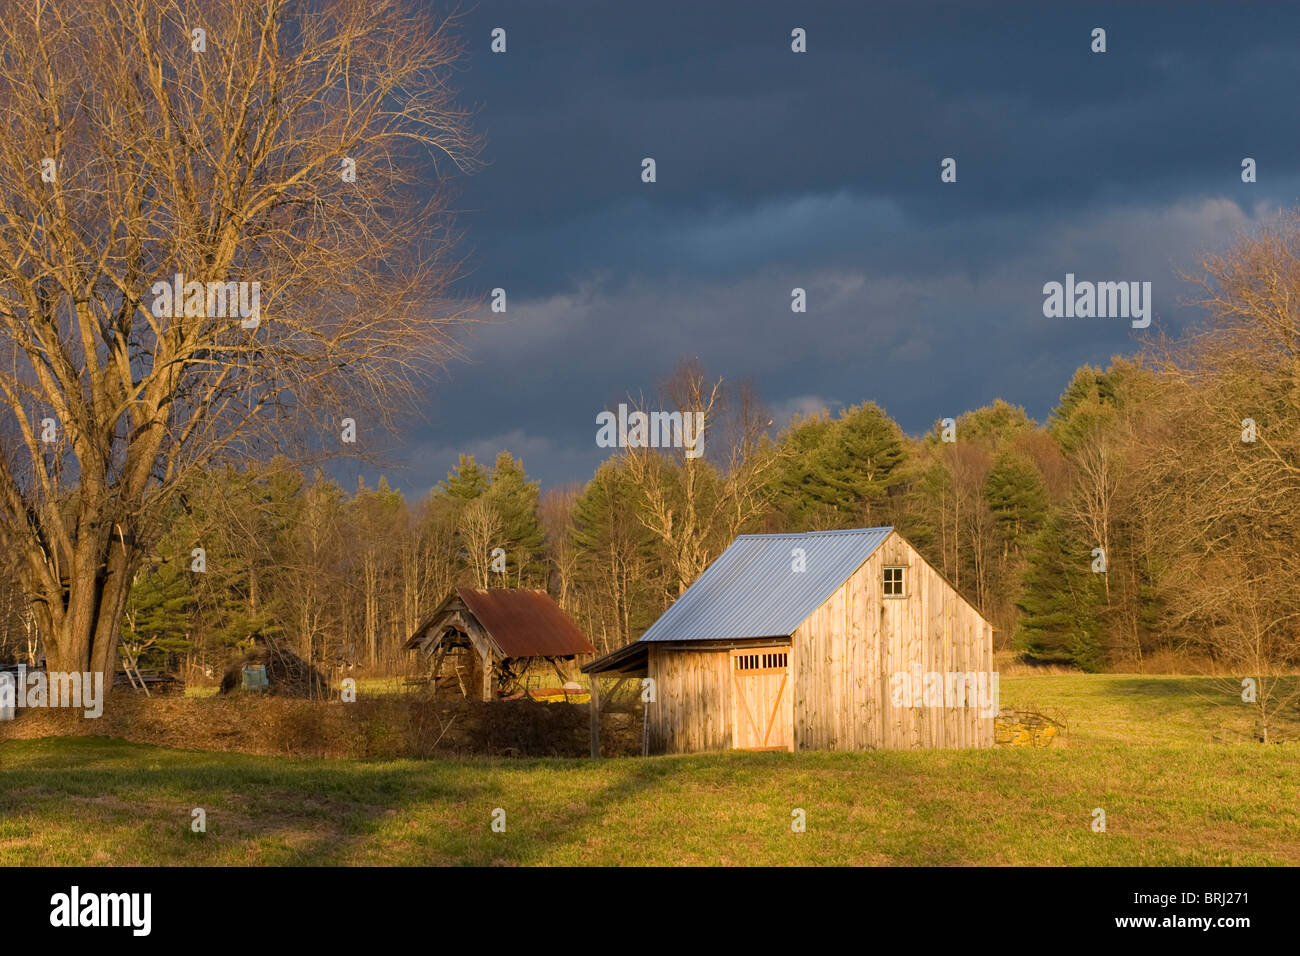 Old weathered barn in field with dark stormy sky - Stock Image